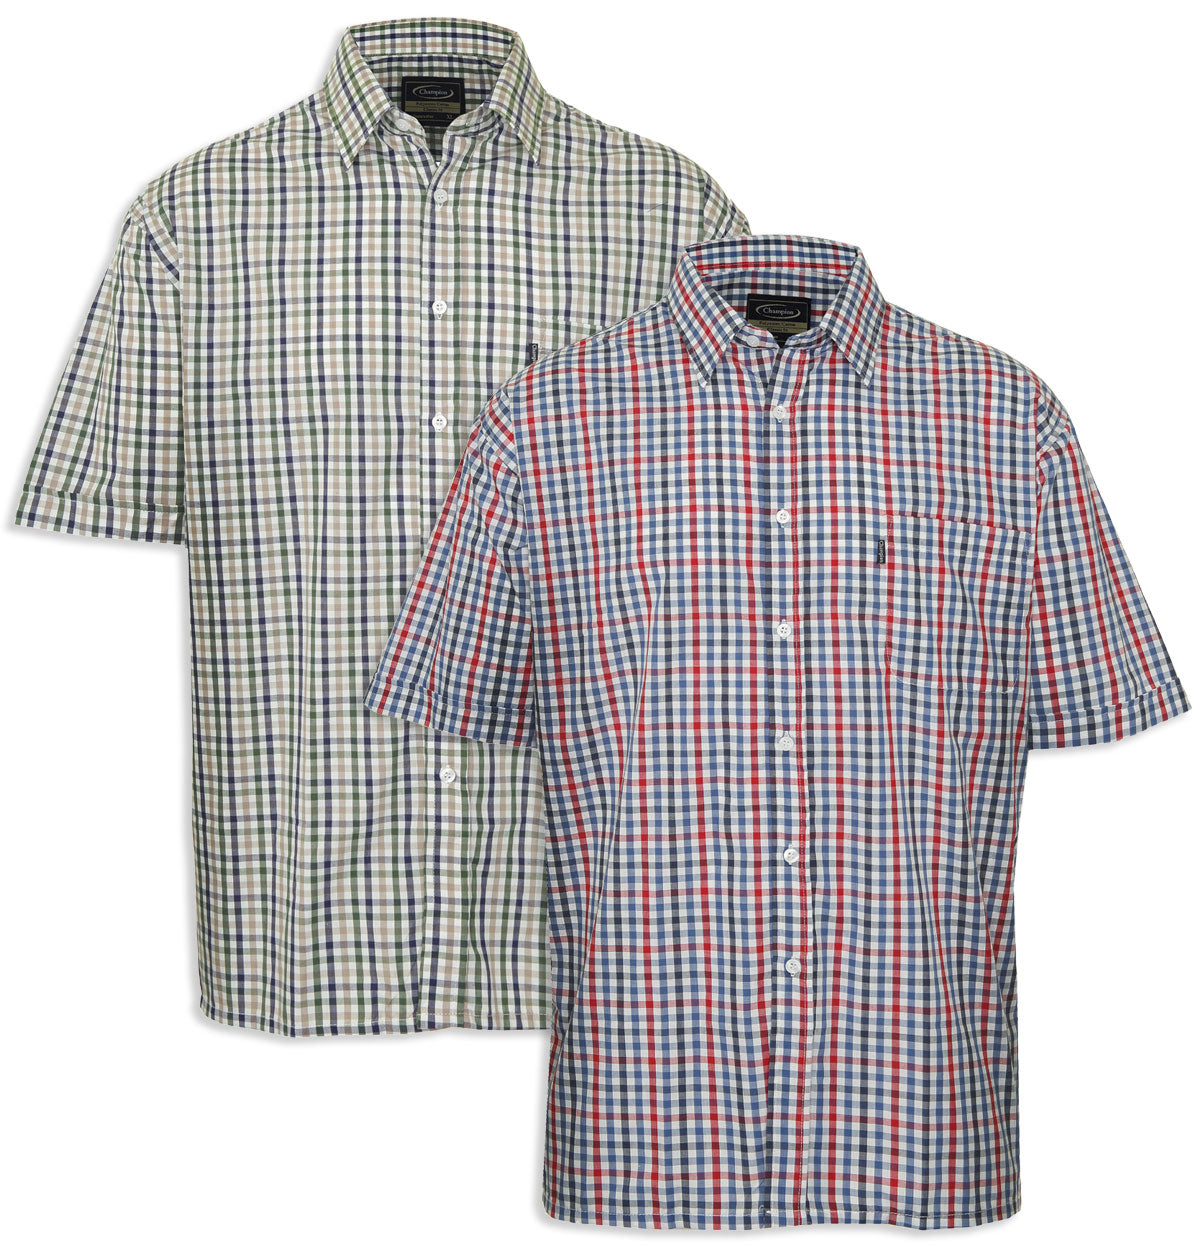 Champion Short Sleeves 3XL 4XL and Above! - Champion Doncaster Country Check Shirt Large